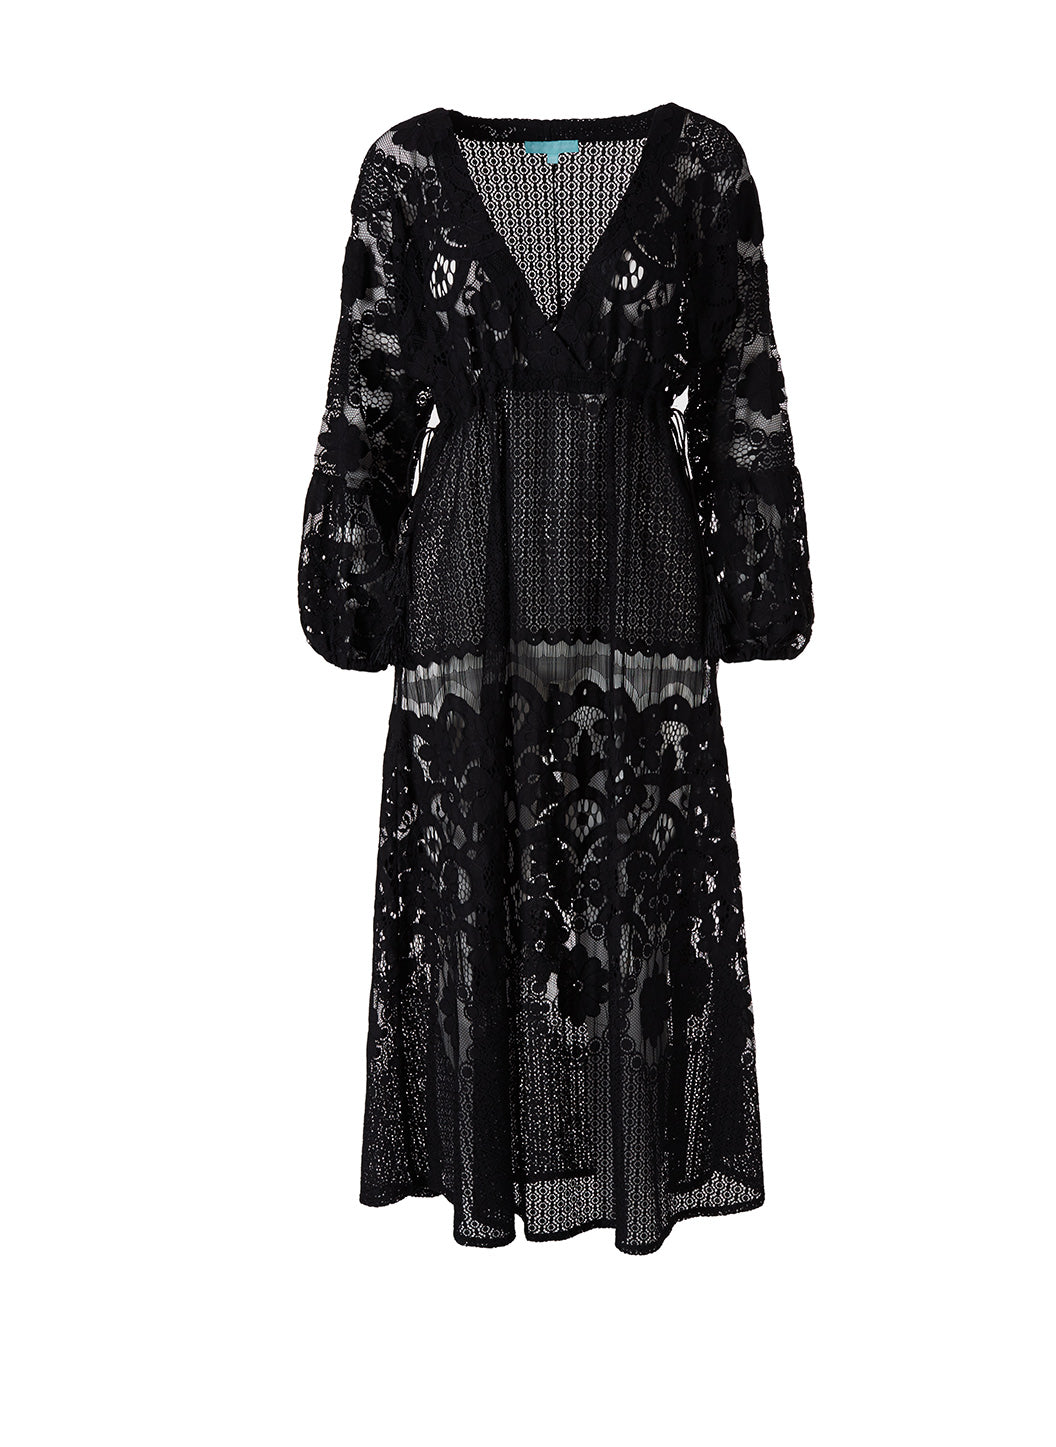 Melissa Black Lace Tie-Side Midi Dress